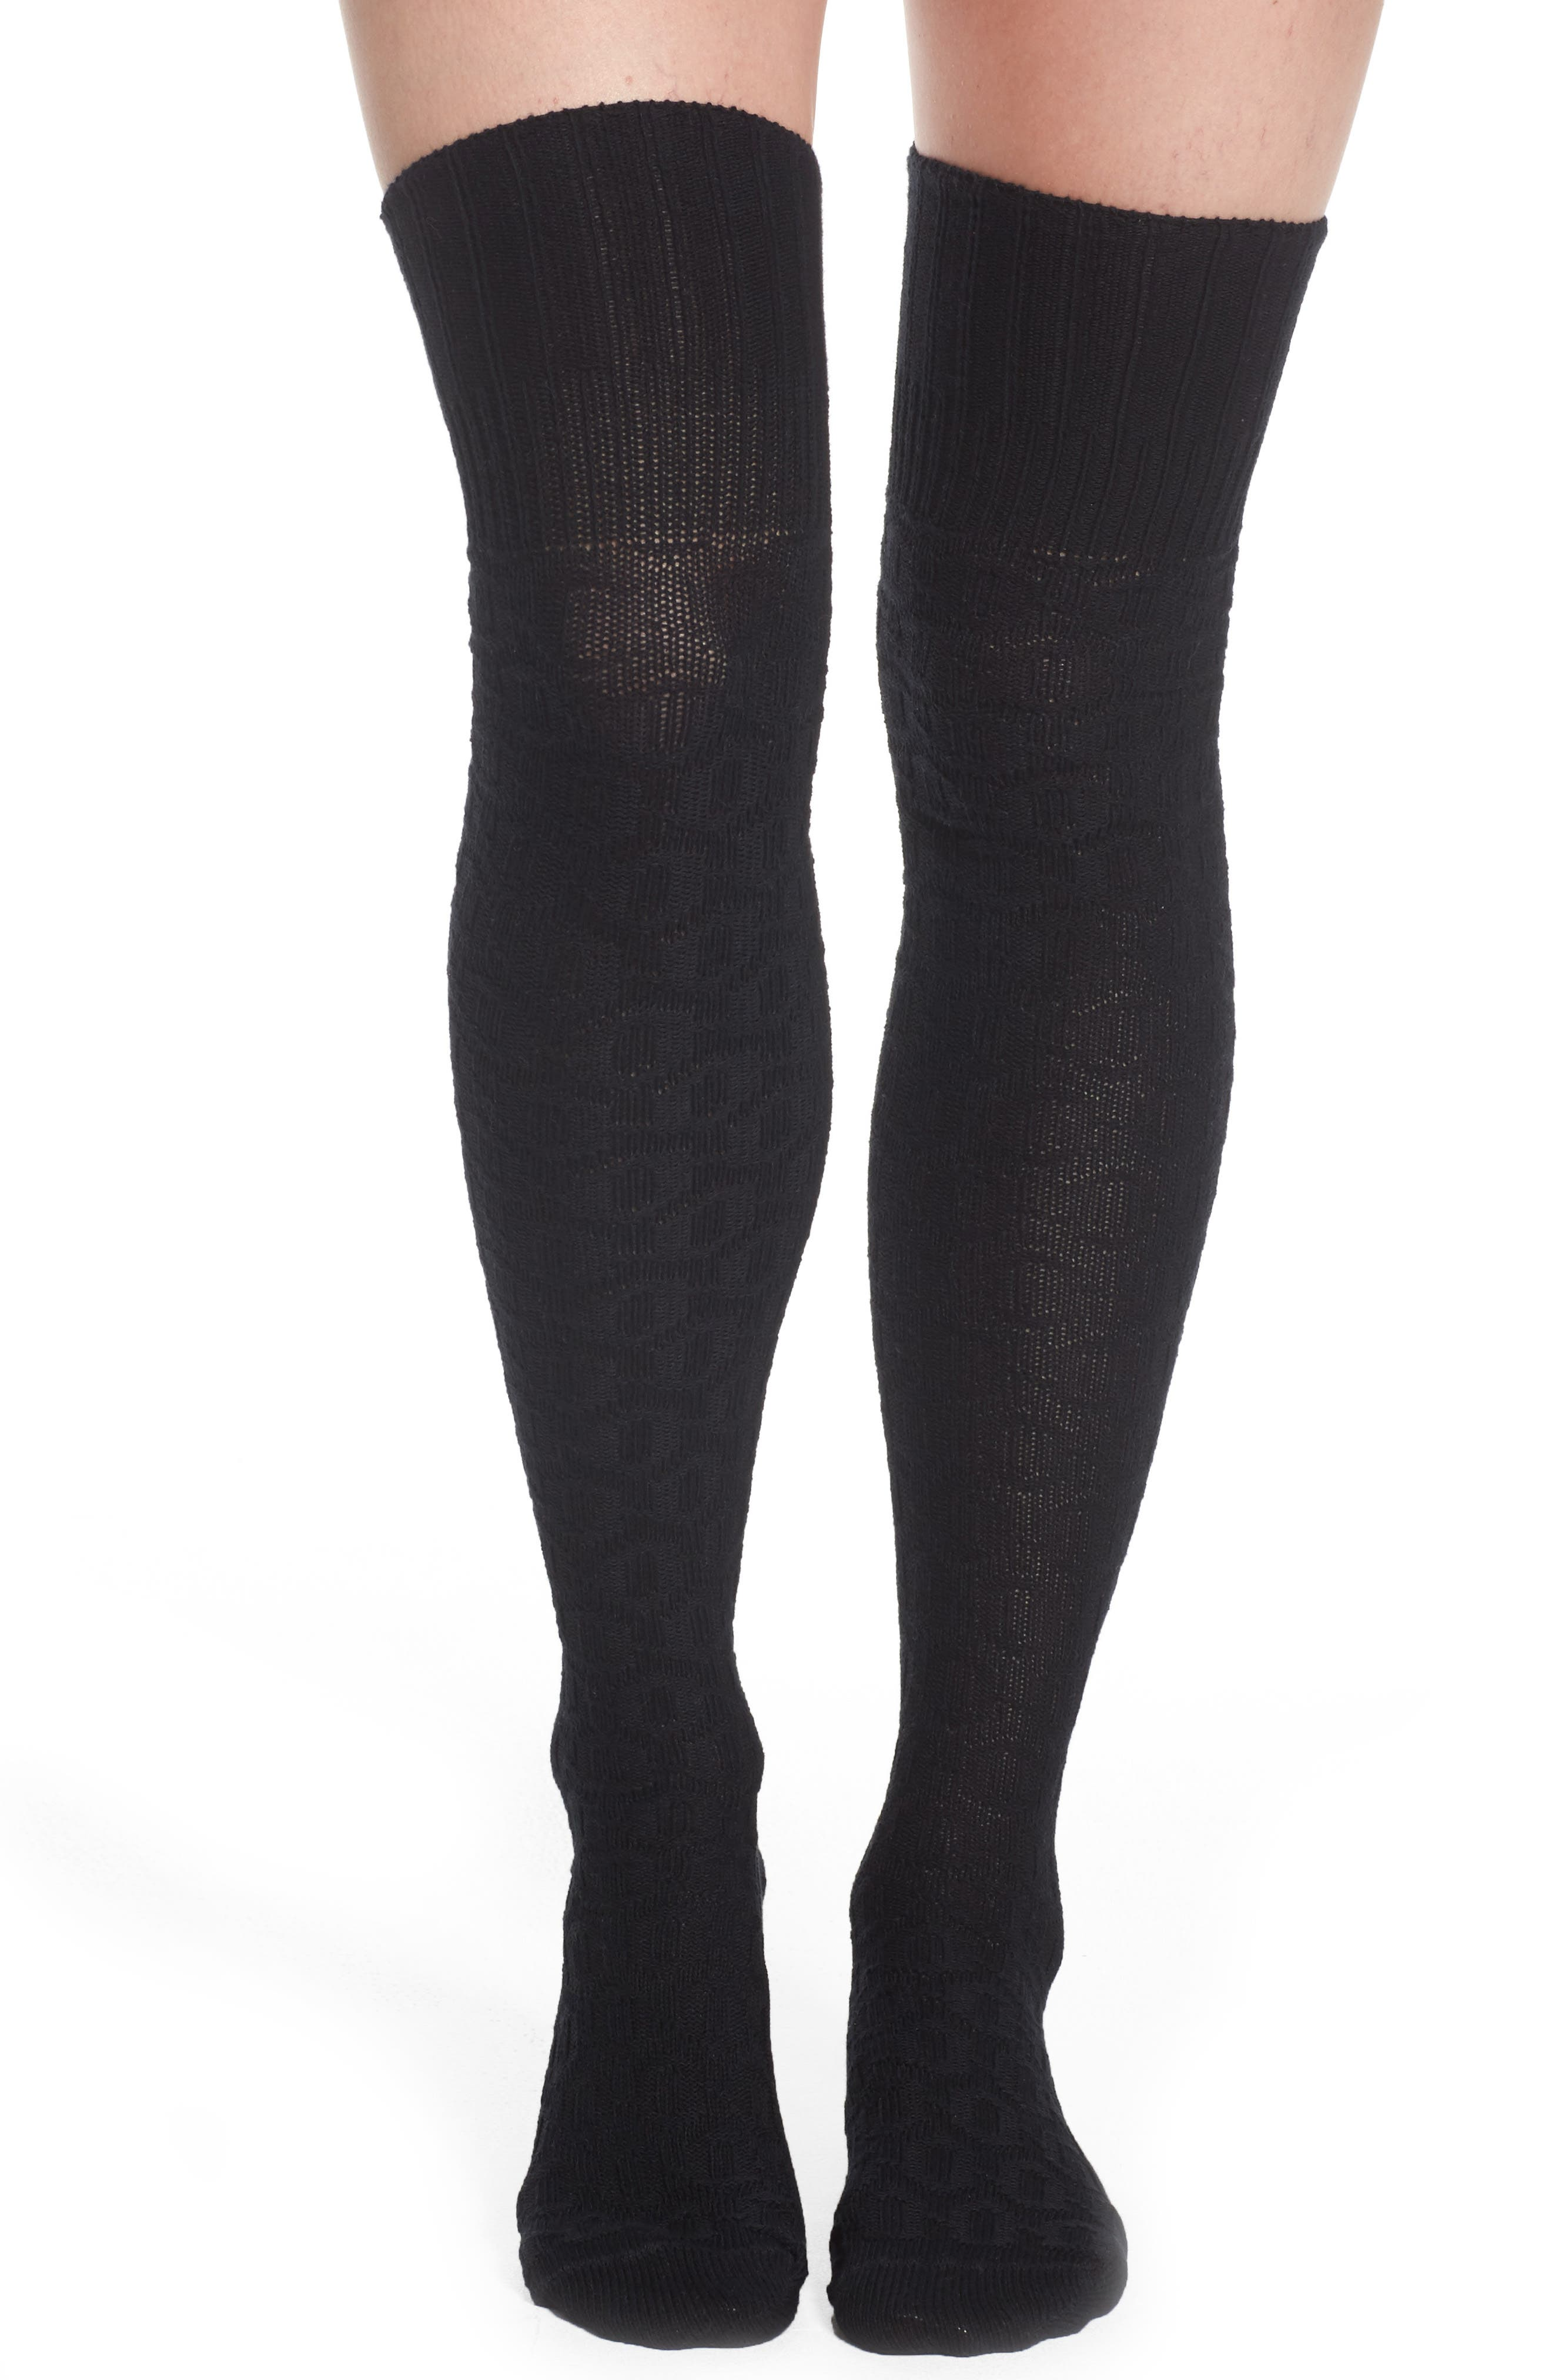 Textured Knit over the Knee Socks,                             Main thumbnail 1, color,                             001